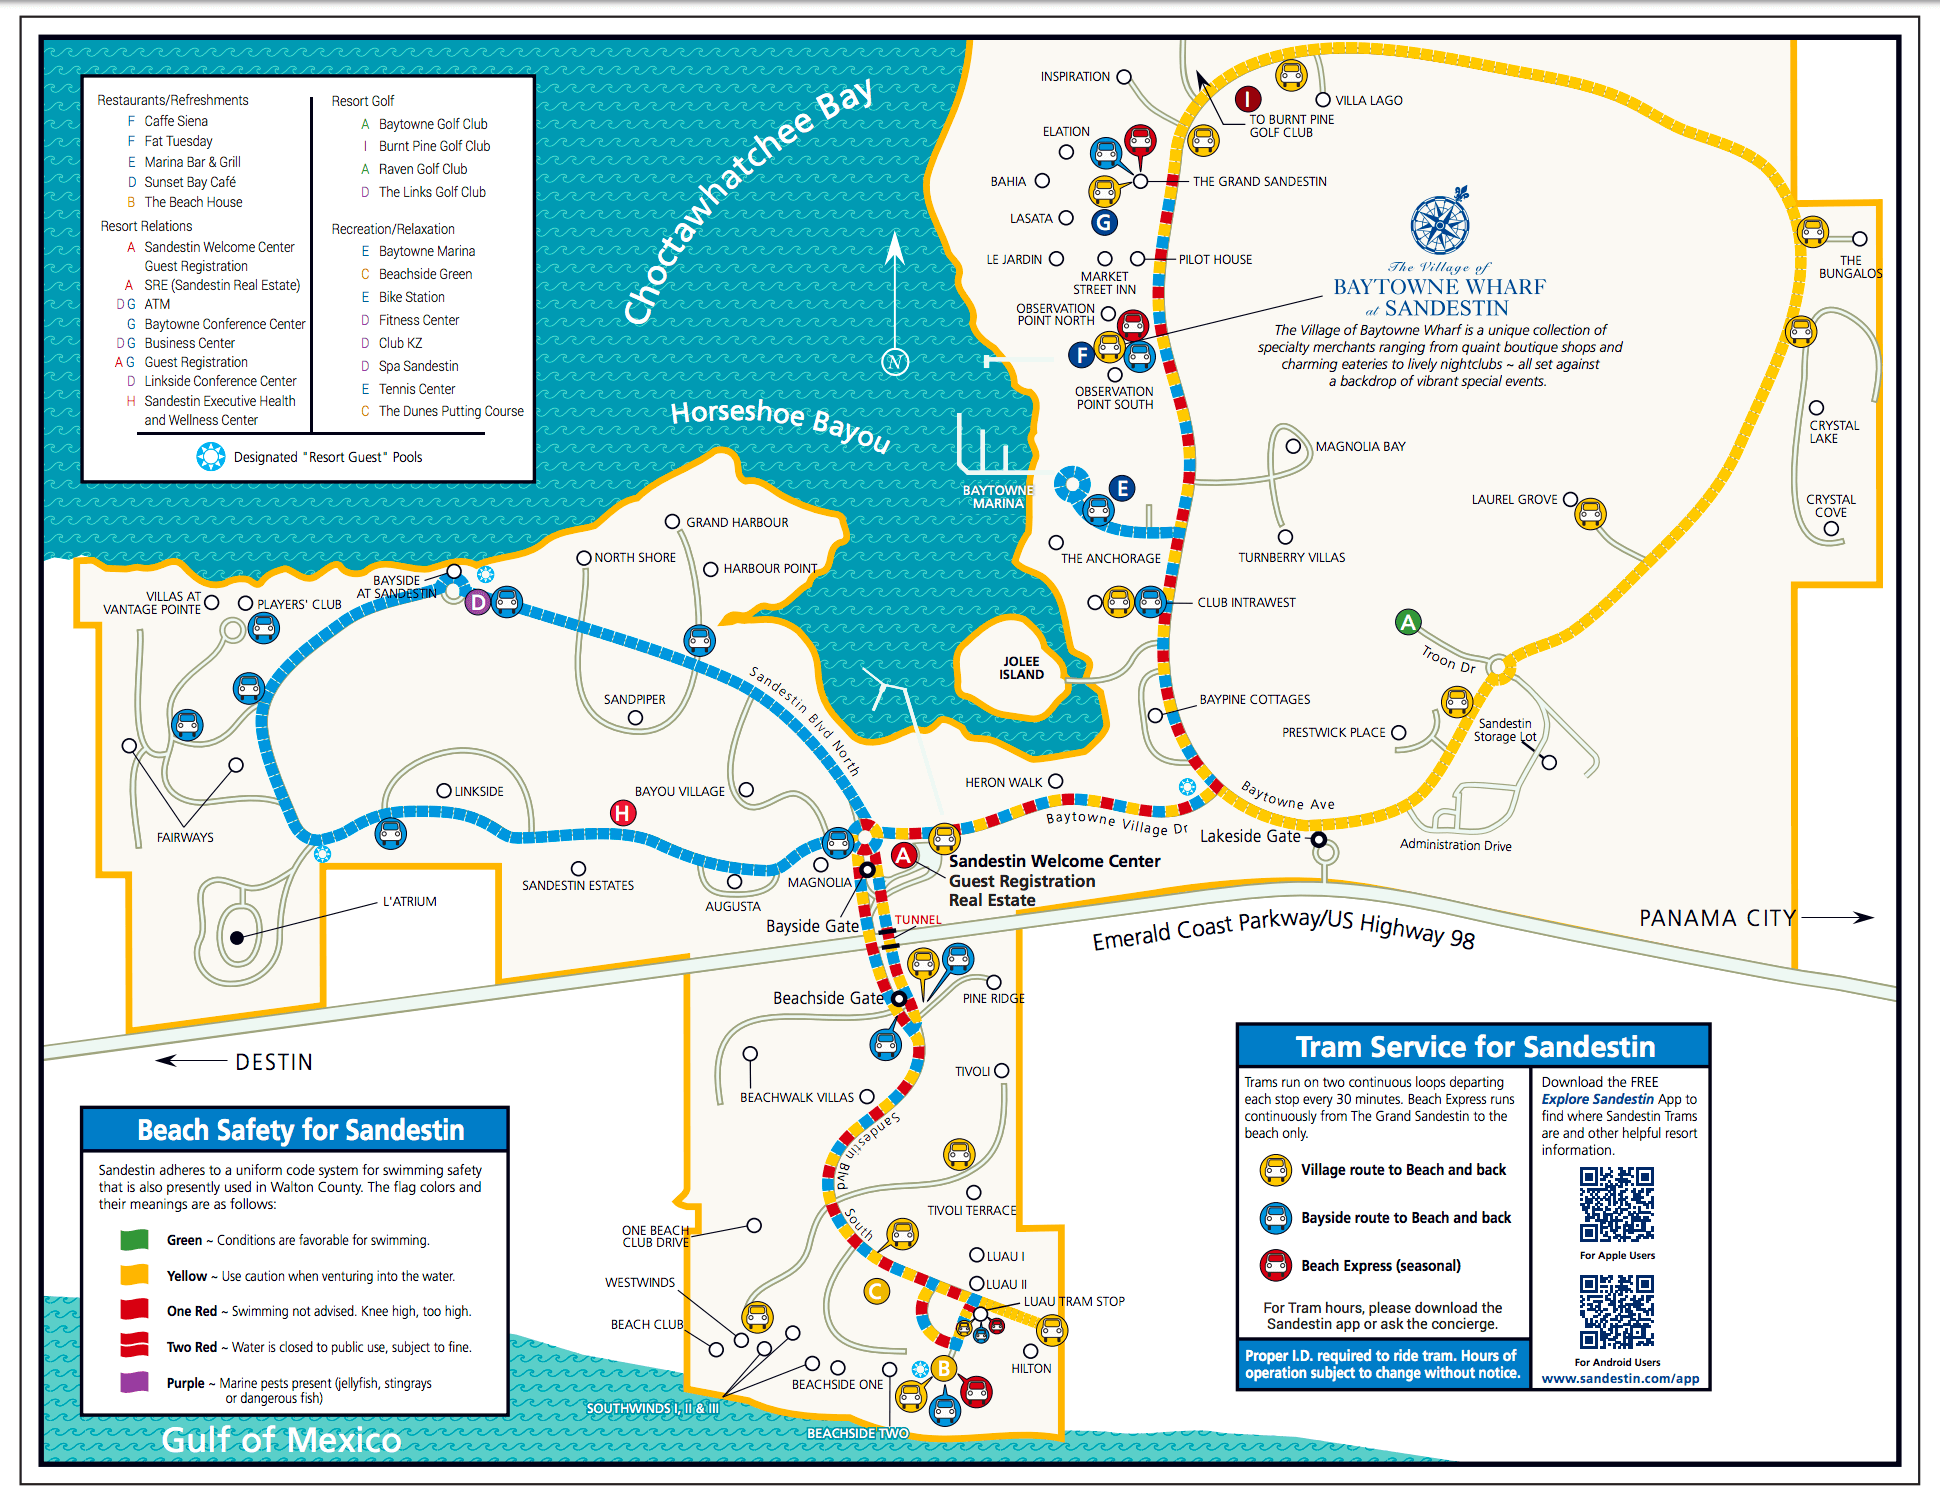 Sandestin Resort Map Area Maps | Sandestin Beach Maps | Hilton Sandestin Beach Golf